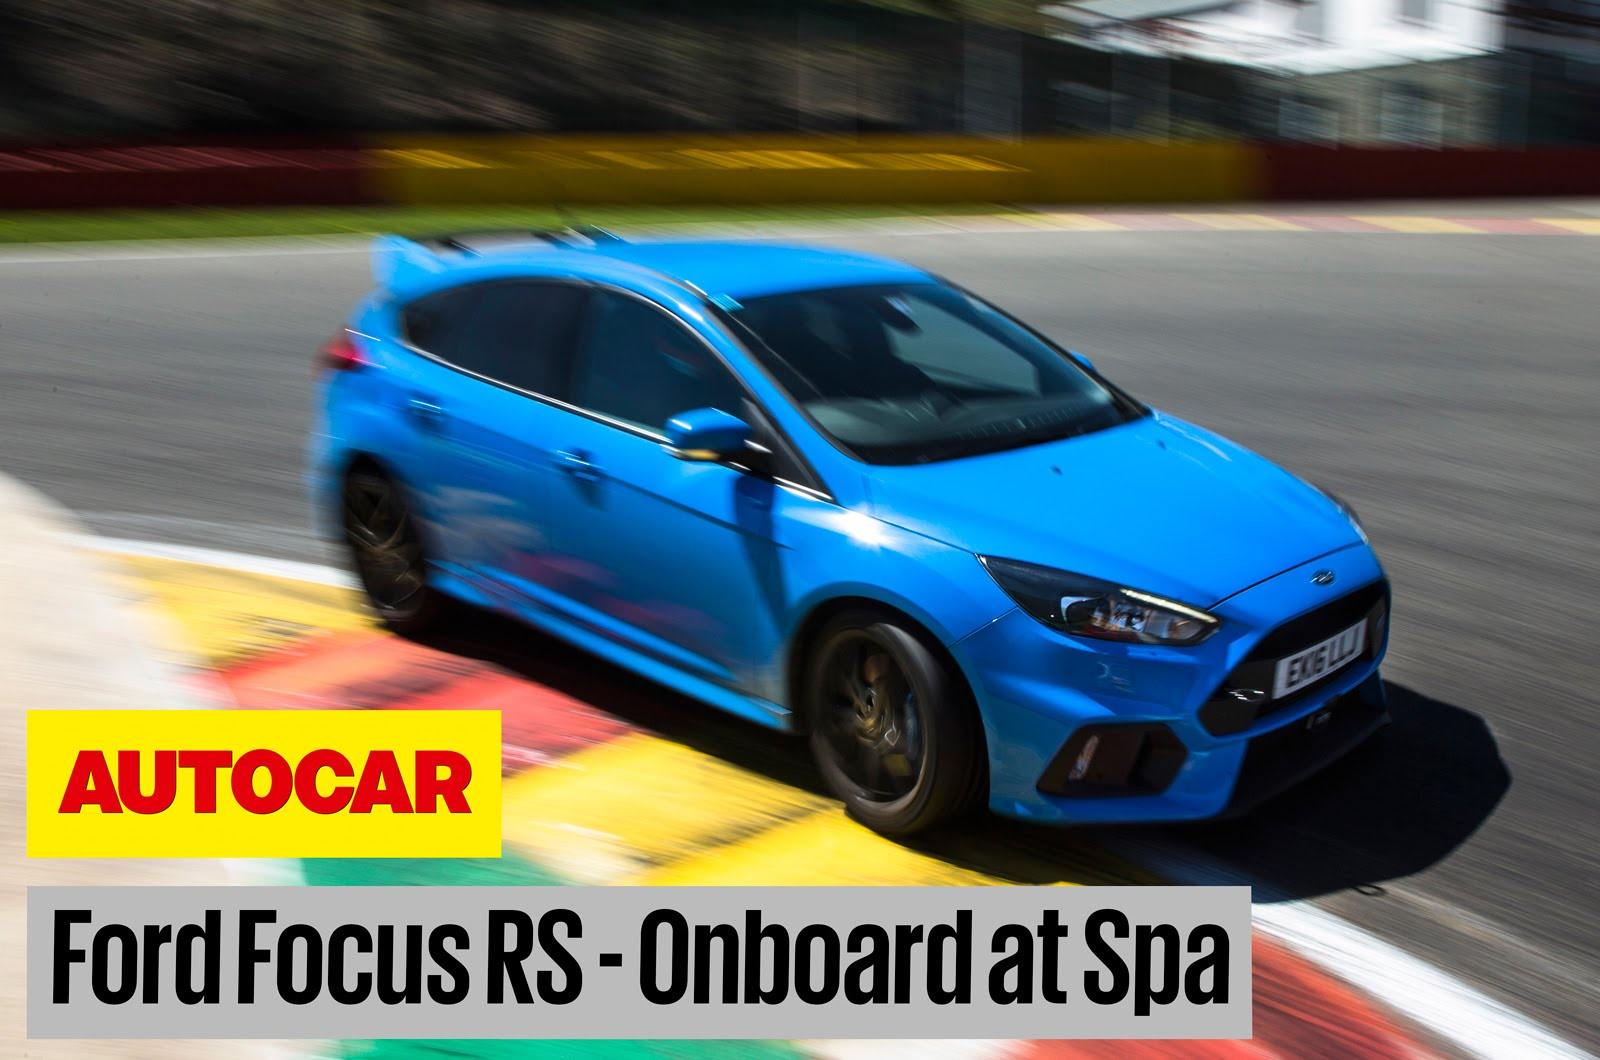 2016 Ford Focus RS Chases Porsche Cayman GT4 On Spa, Will The Hot Hatch Keep Up?